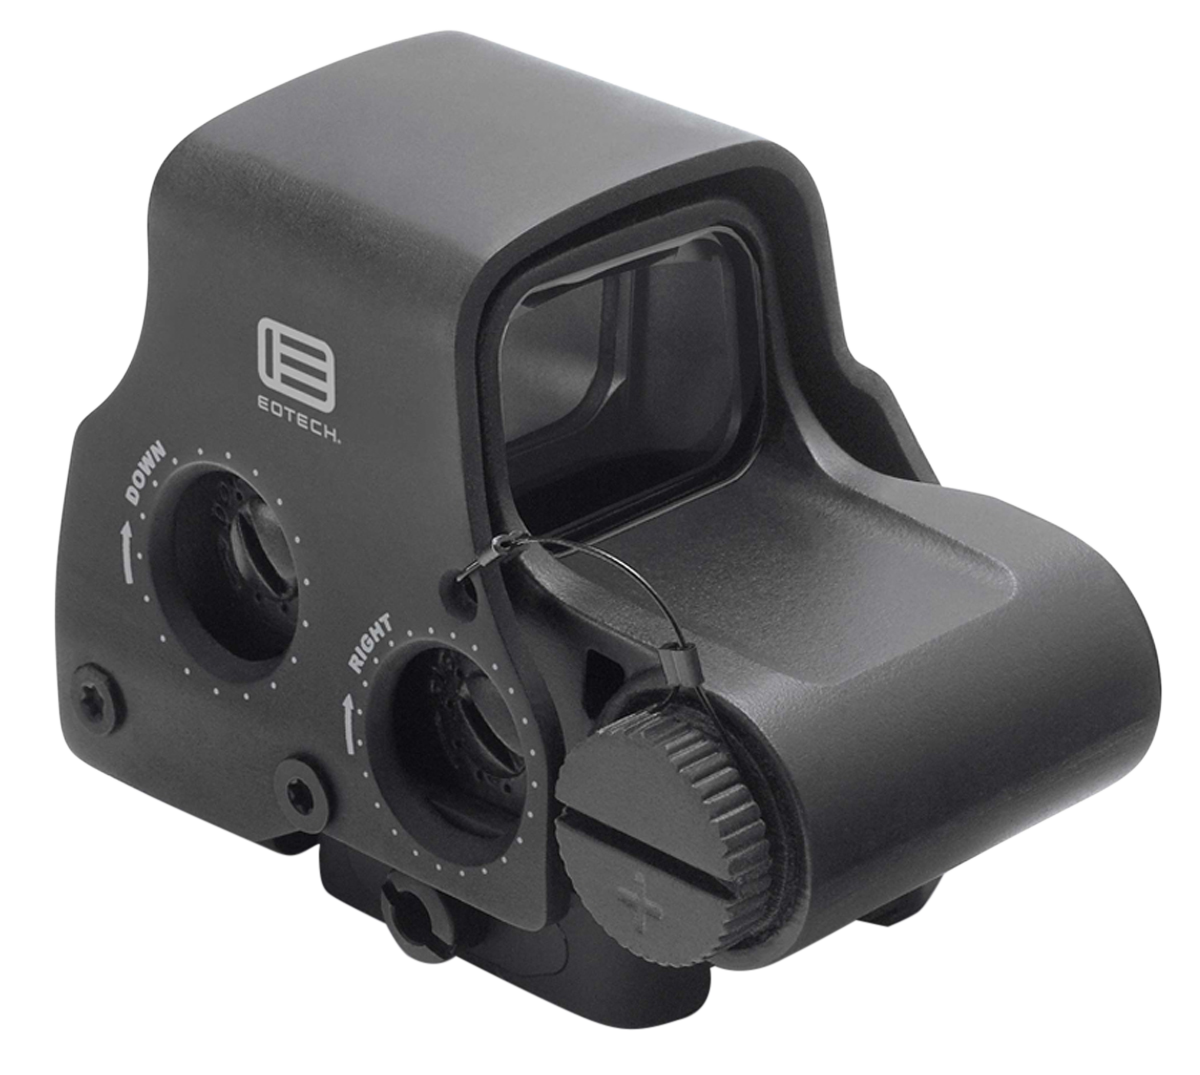 Eotech EXPS20 1x 30x23mm Obj Unlimited Eye Relief 68 MOA Ring/1 MOA Dot Black